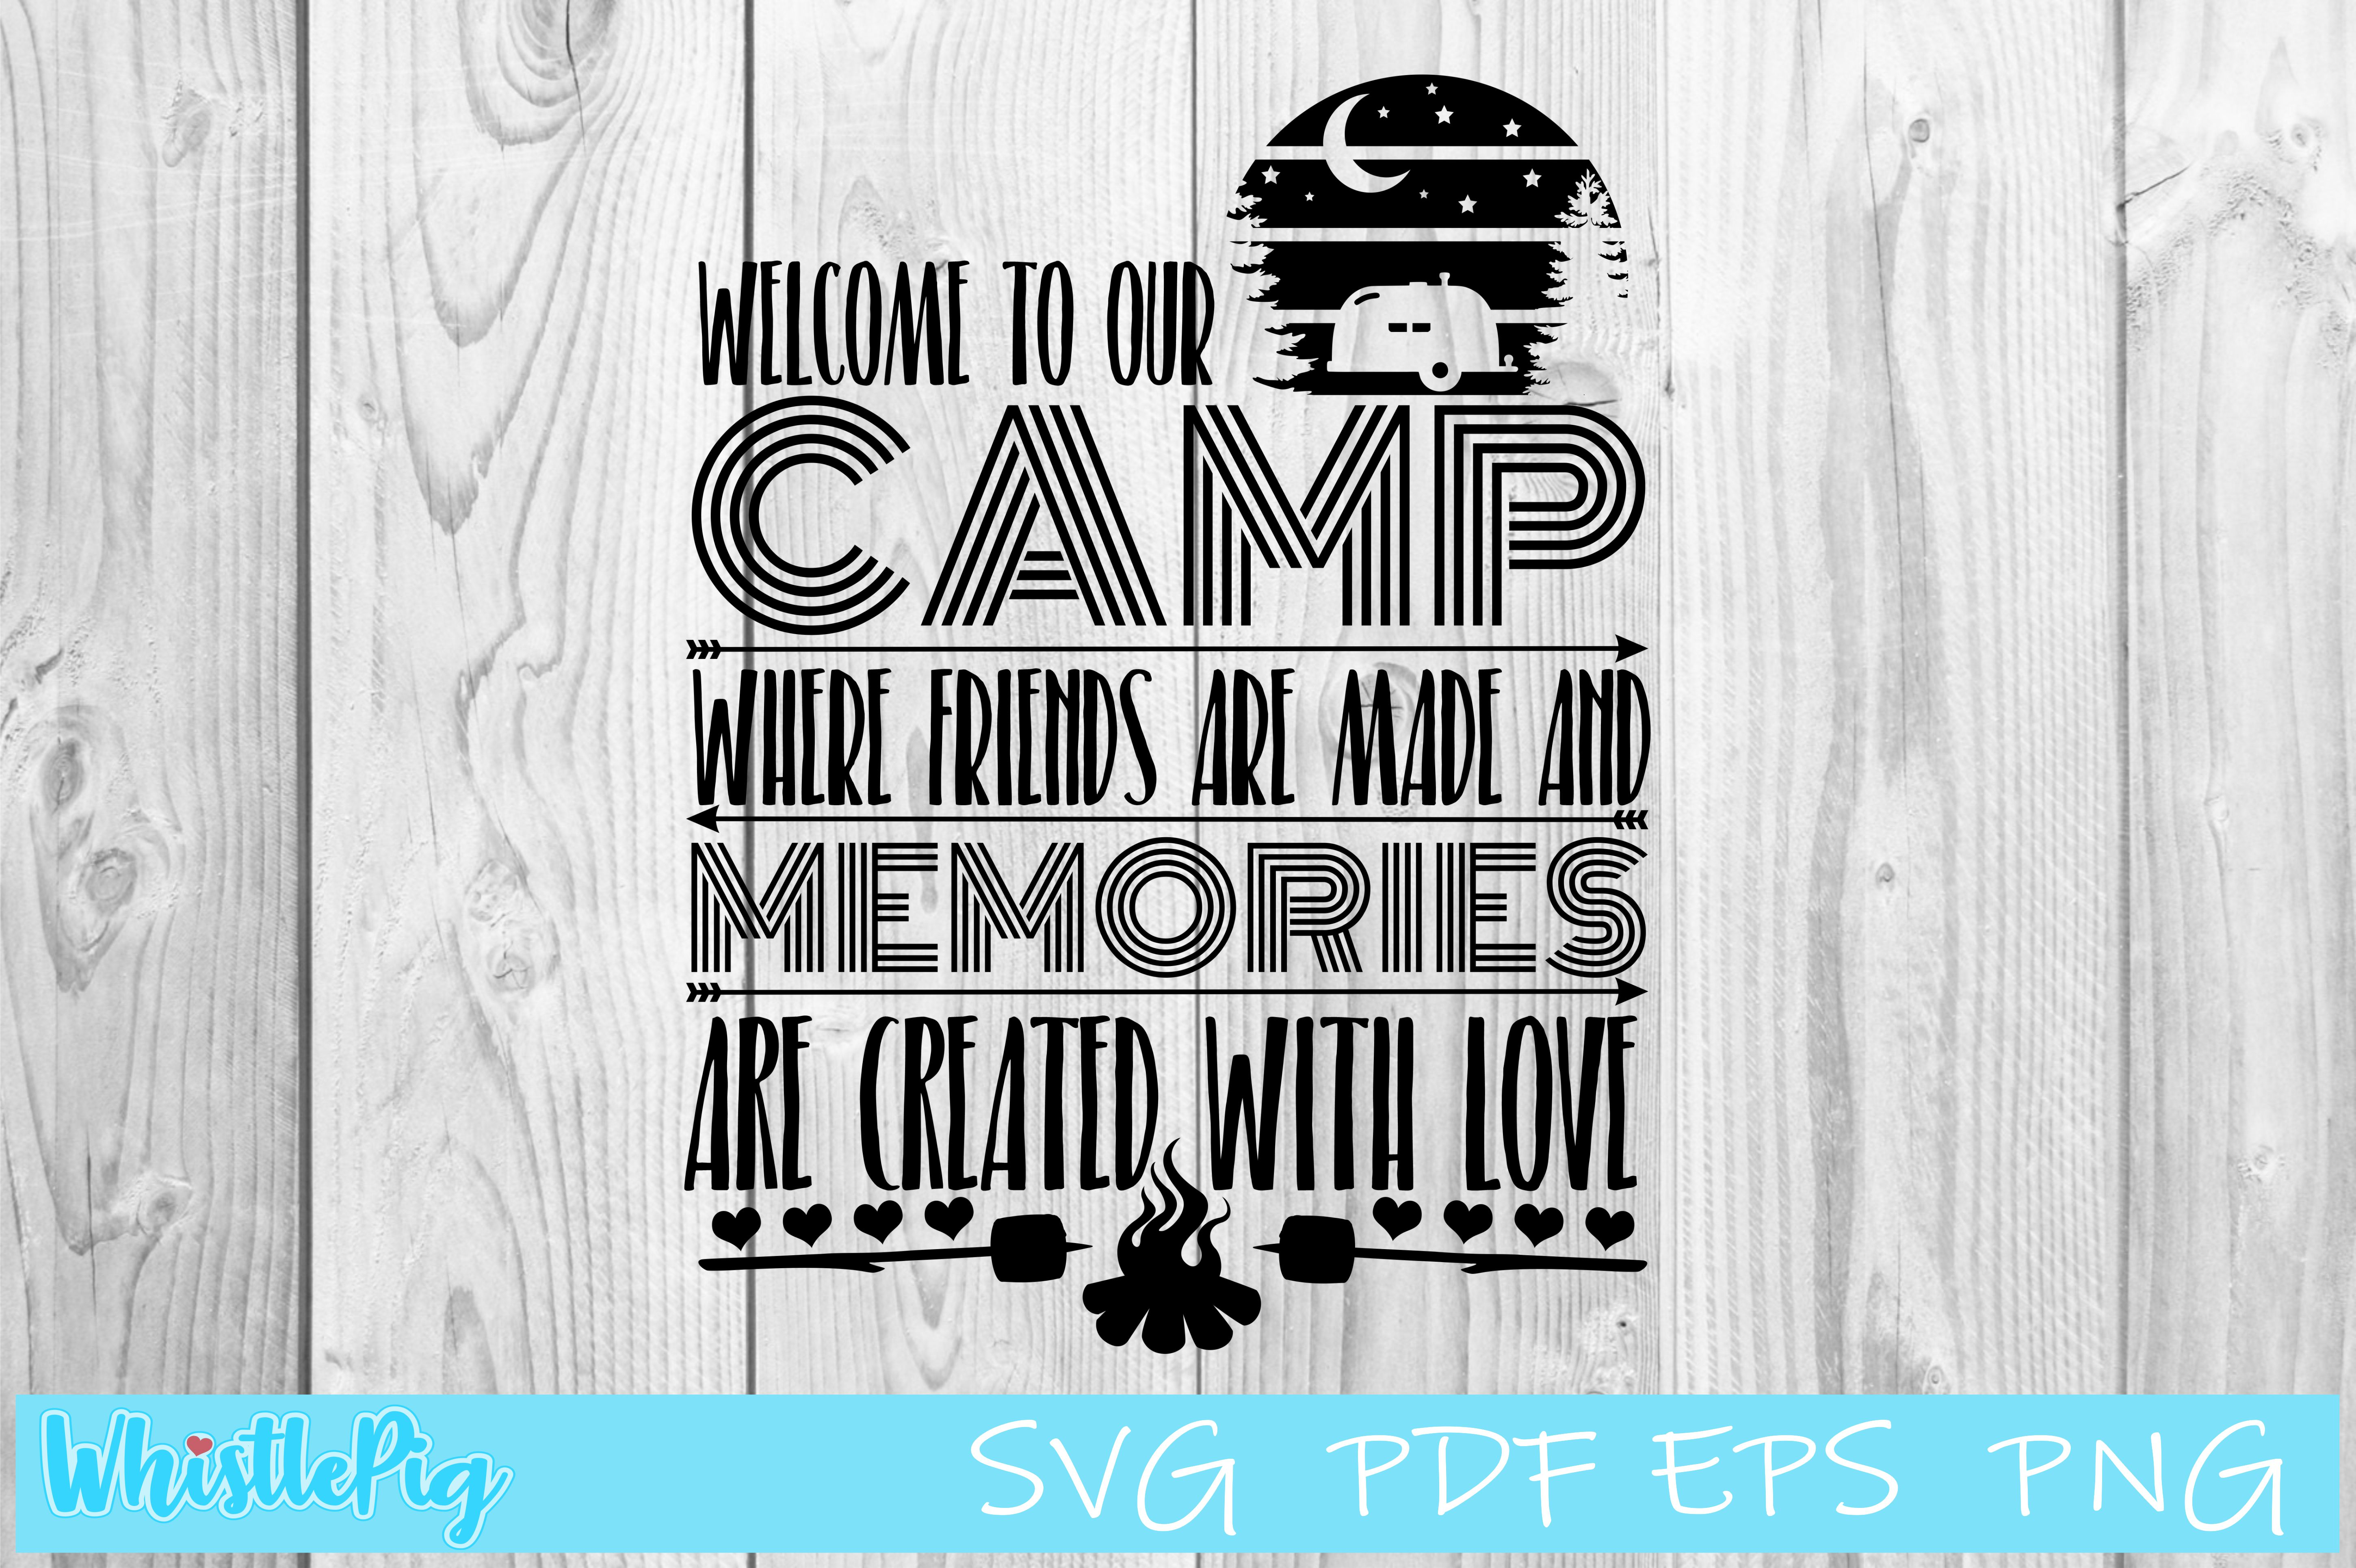 Download Free Welcome To Our Camp Graphic By Whistlepig Designs Creative Fabrica for Cricut Explore, Silhouette and other cutting machines.